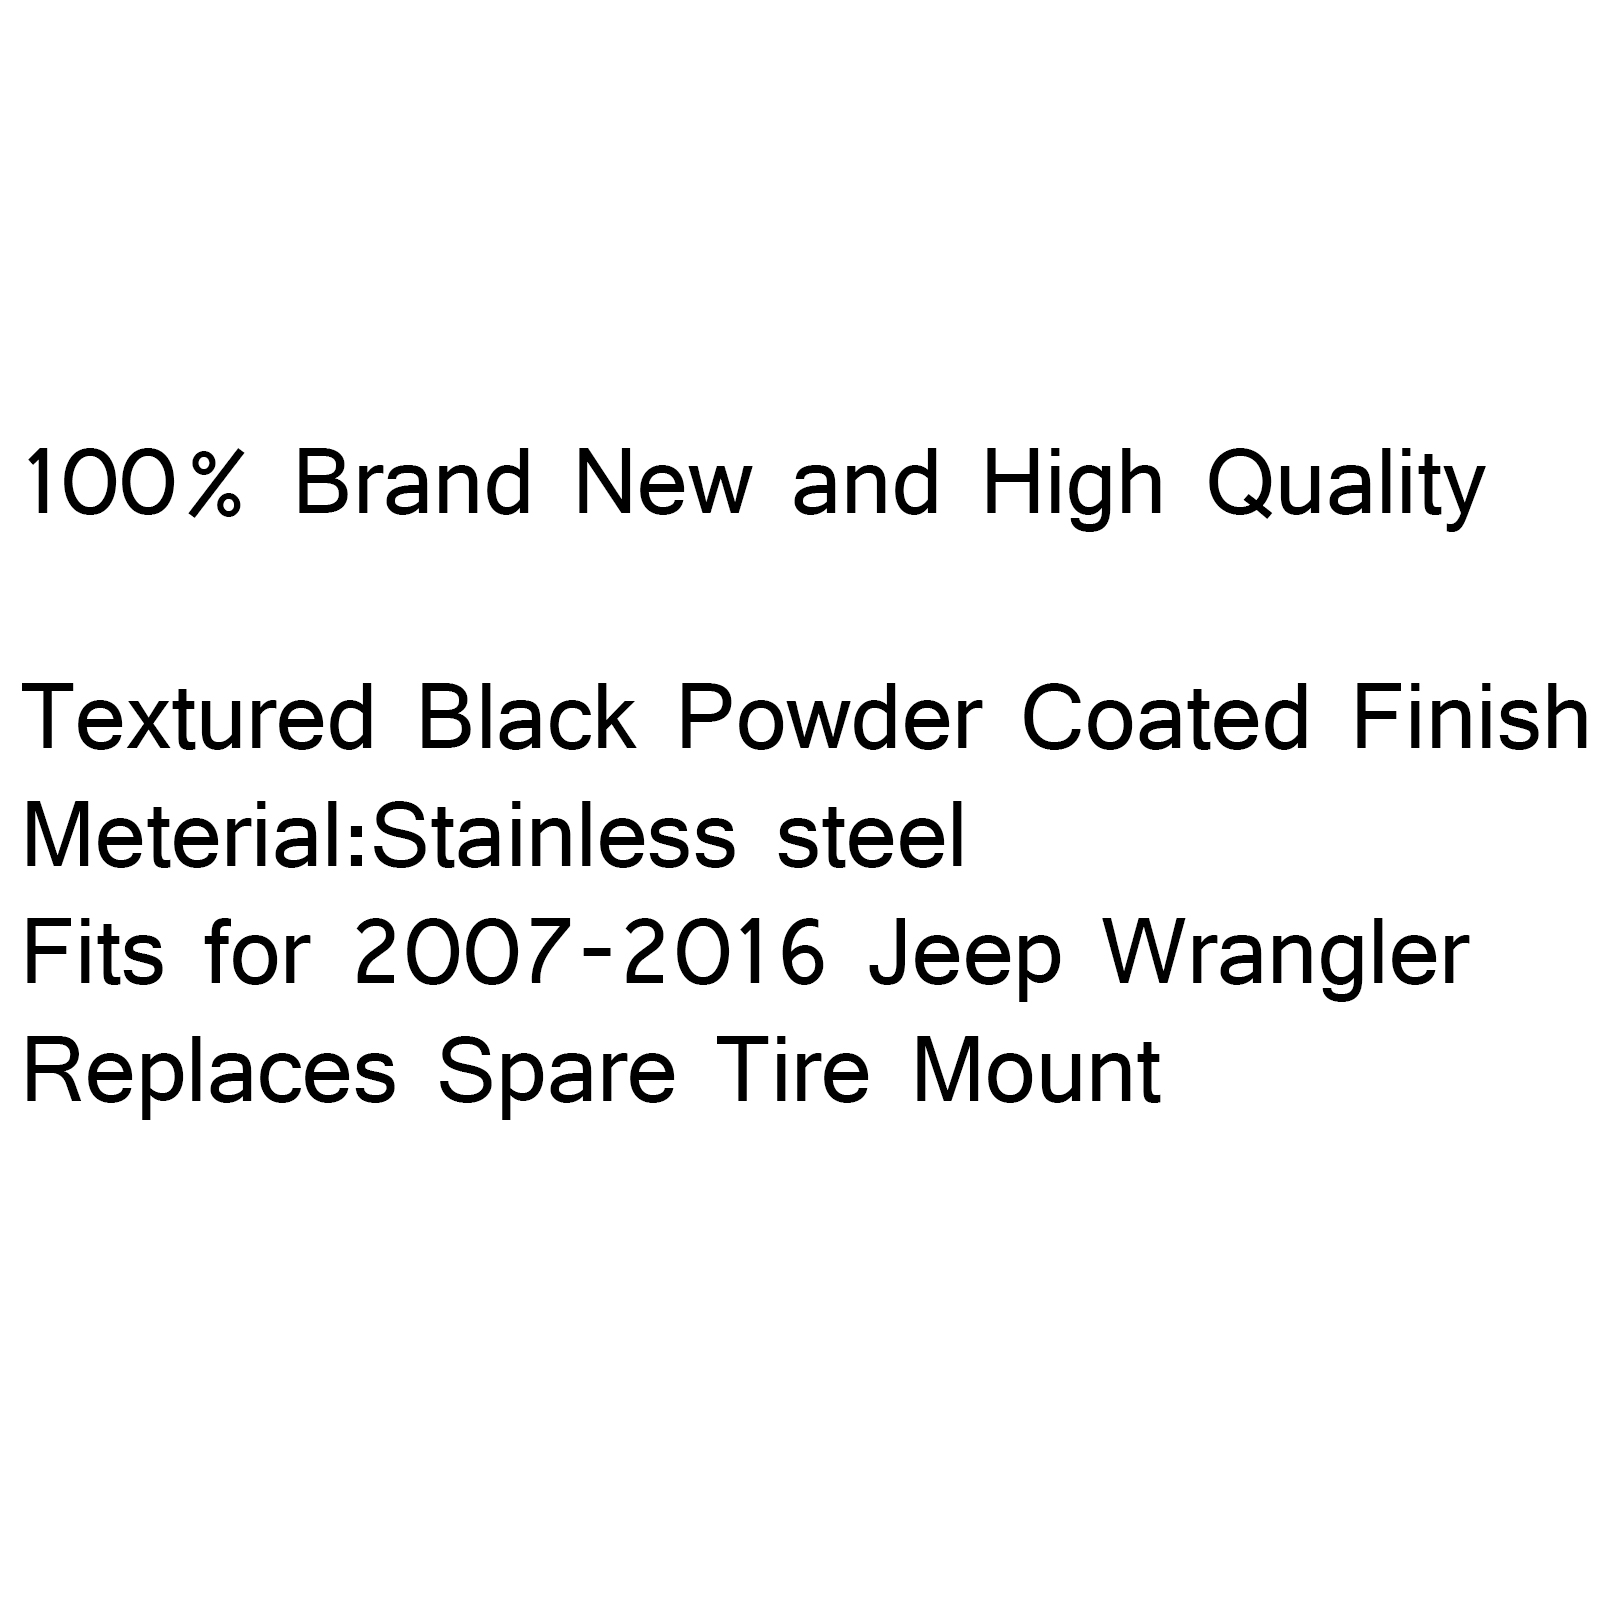 Engine Carbon Treatment furthermore Mopar Rocker Molding Rivet 6504737 additionally 65626 Dreaded Swirl Port Got Me 2 moreover Discussion T4117 ds654754 as well 272354194542. on srt8 car cover